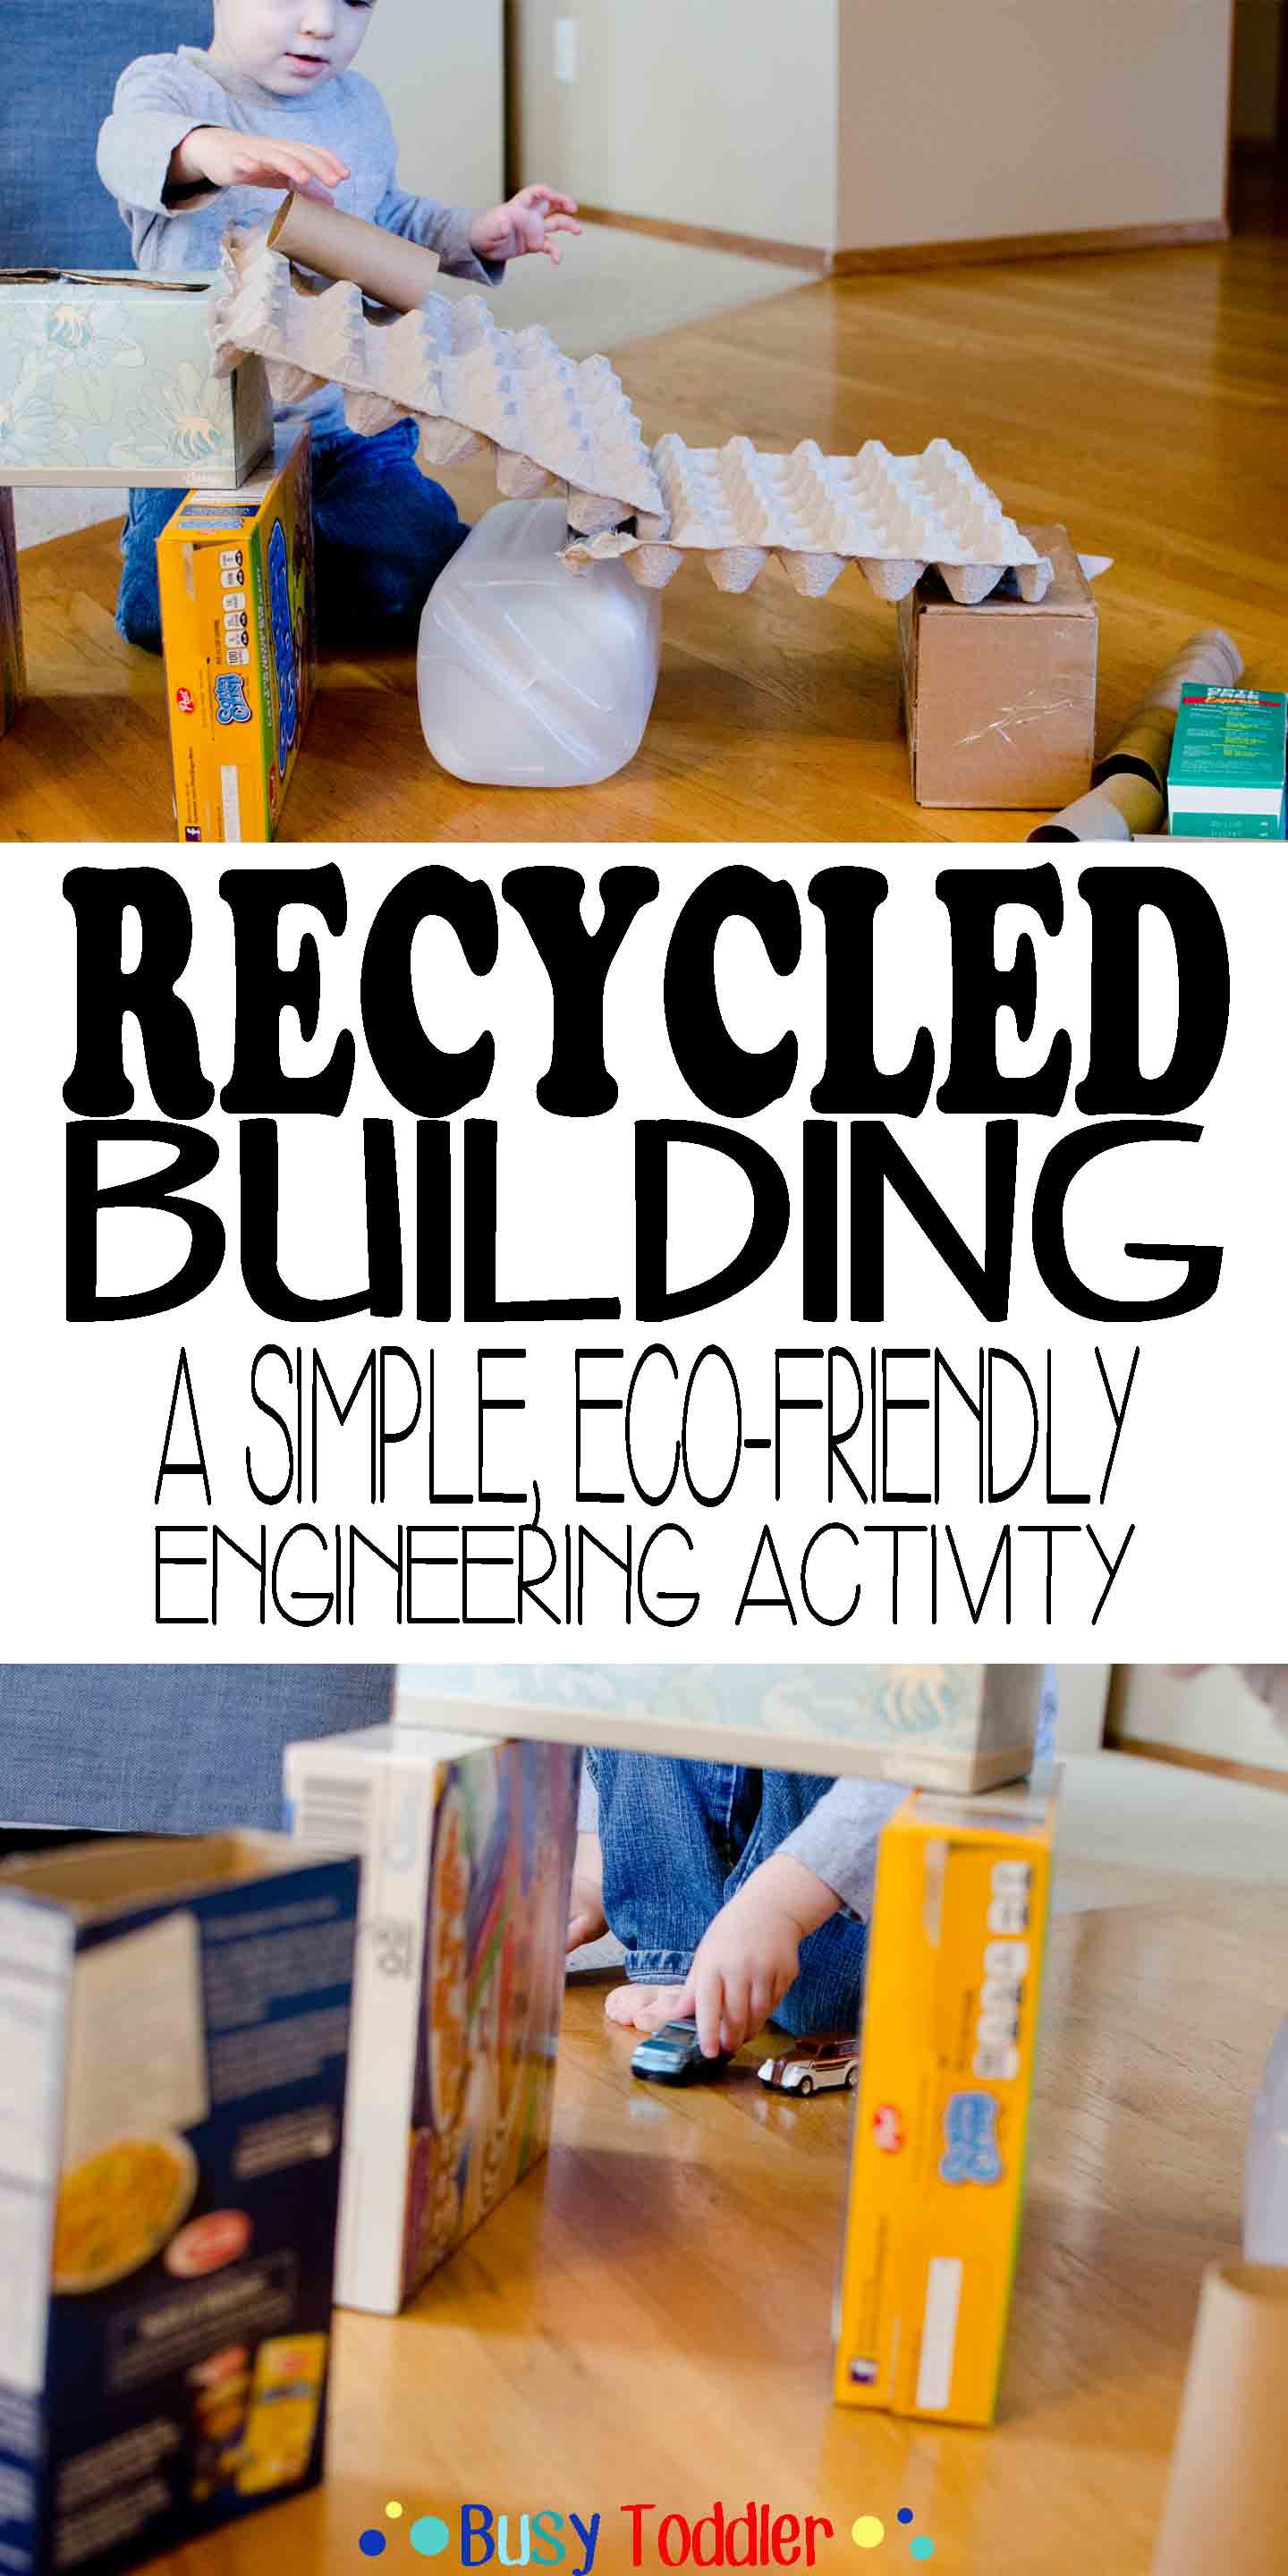 Recycled Building STEM Activity - Busy Toddler